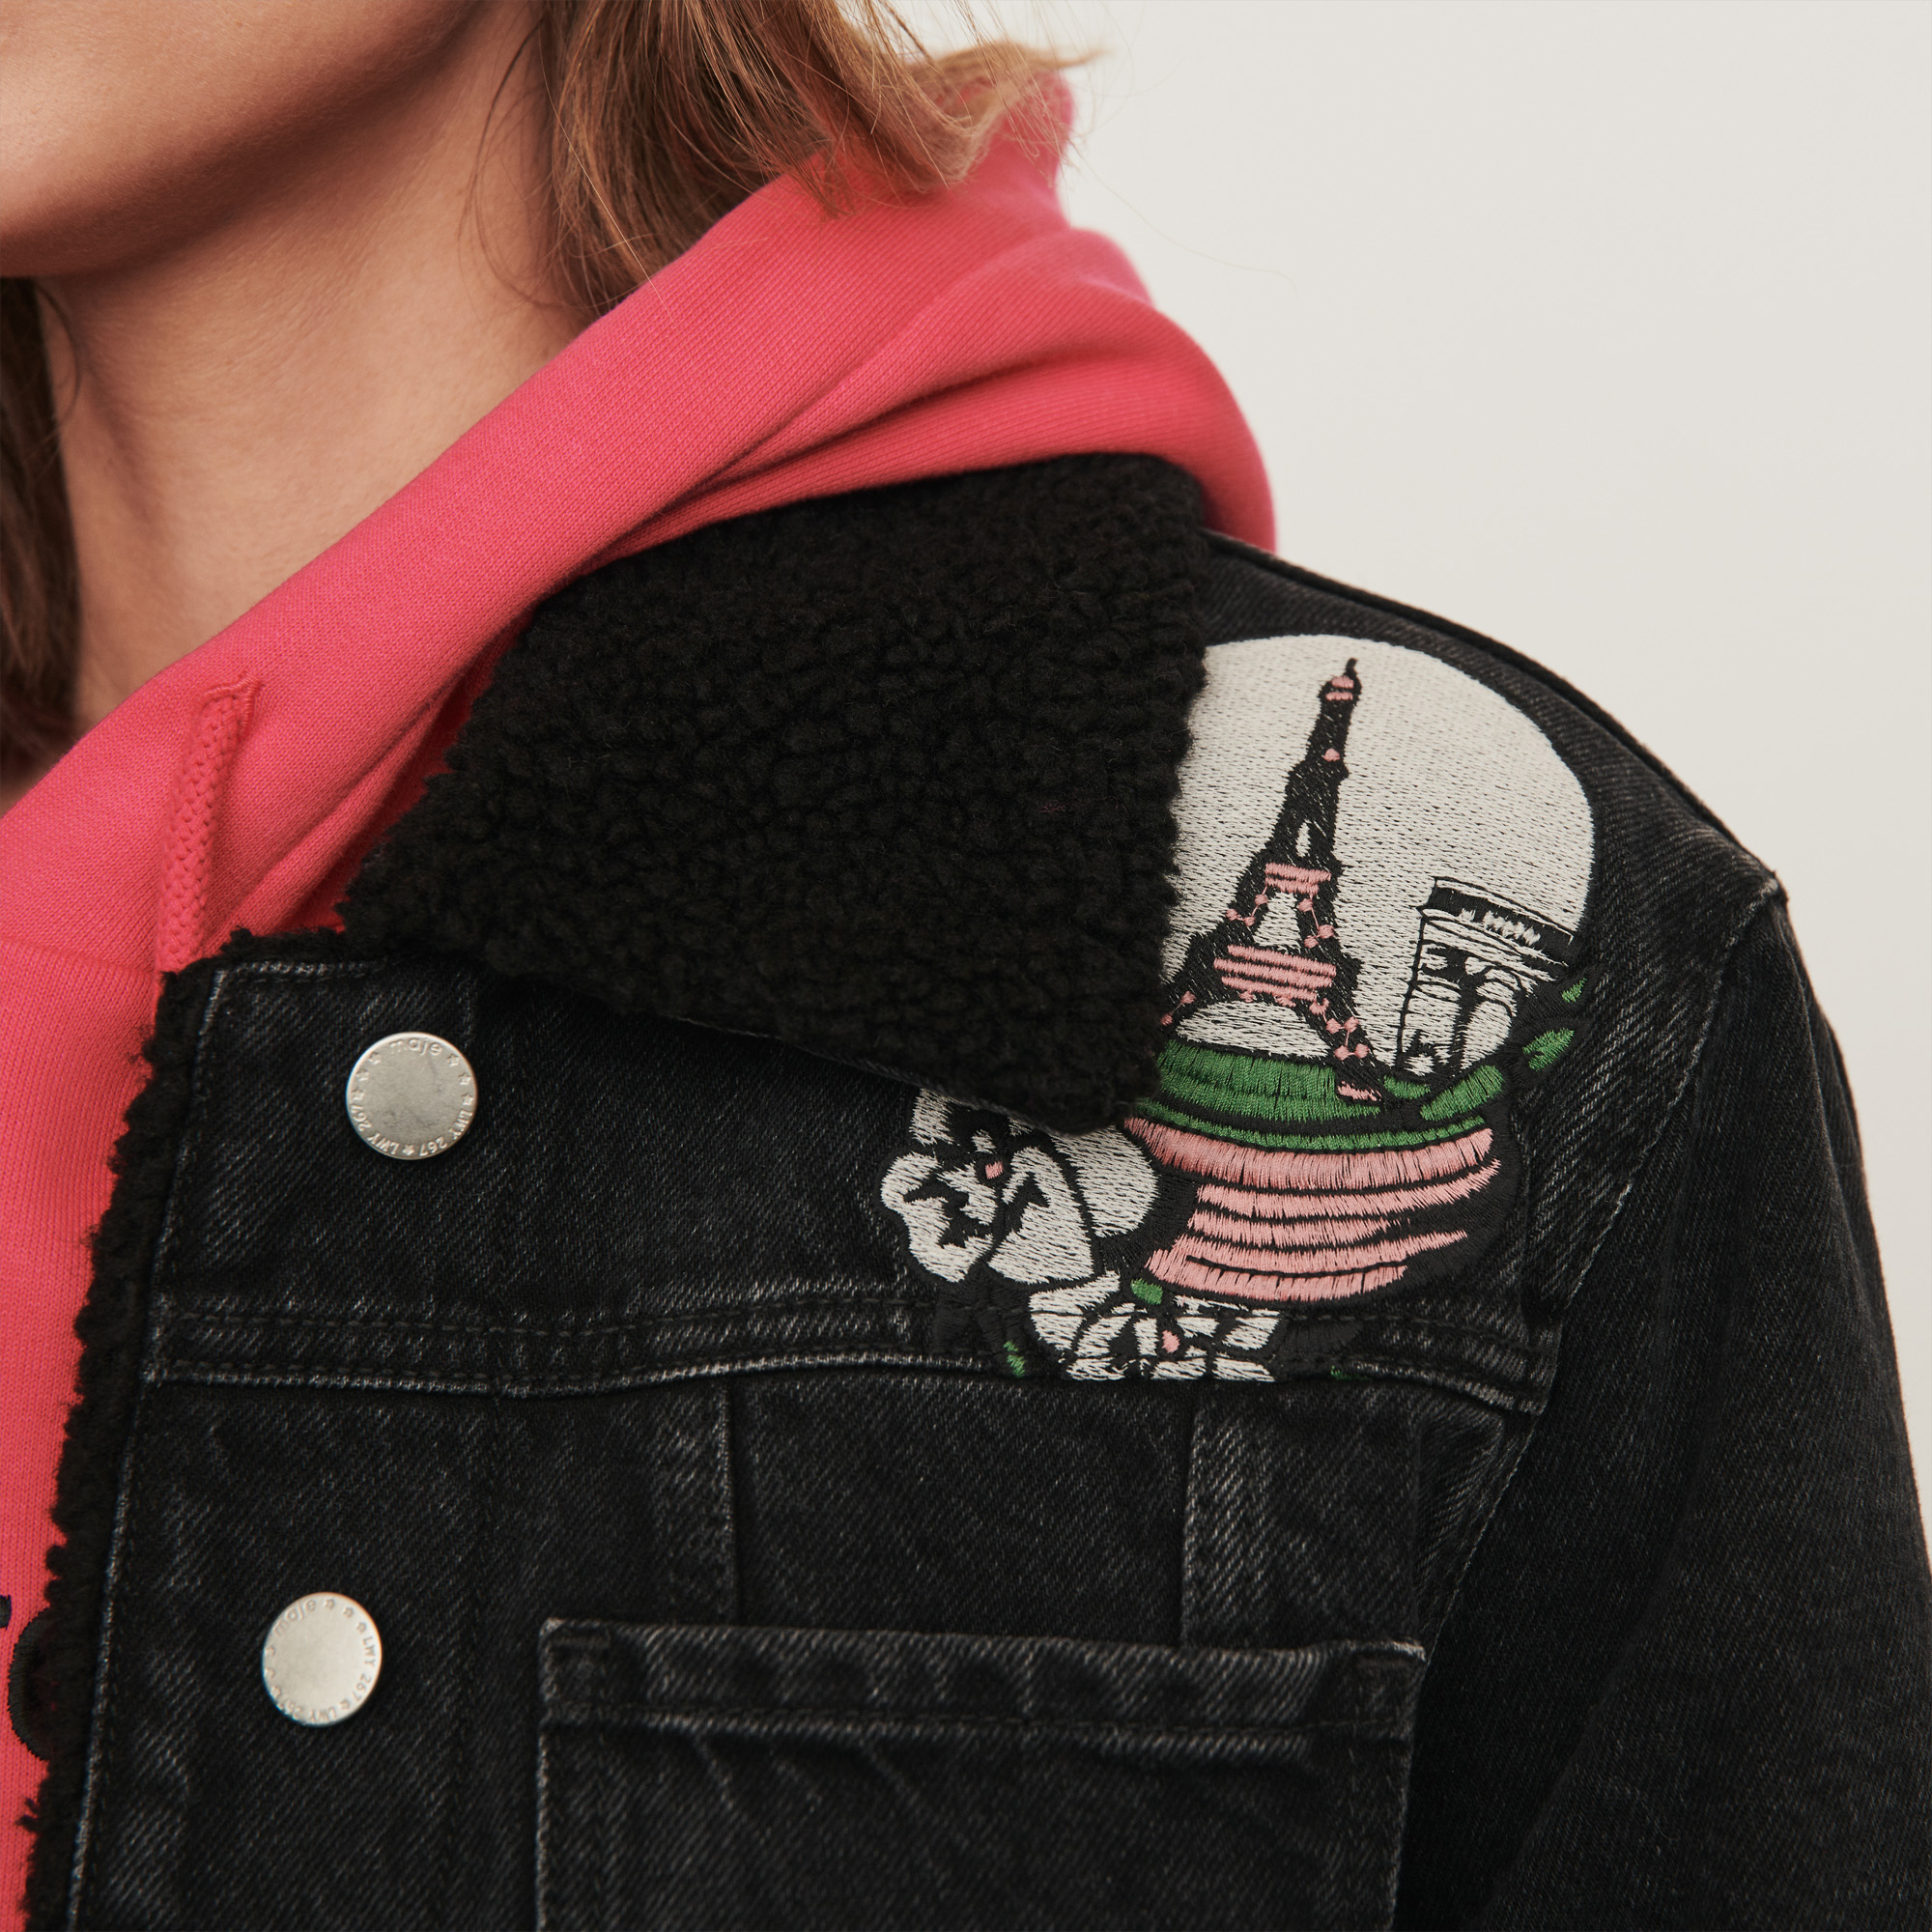 Jean Jacket With Embroidered Patches - Black